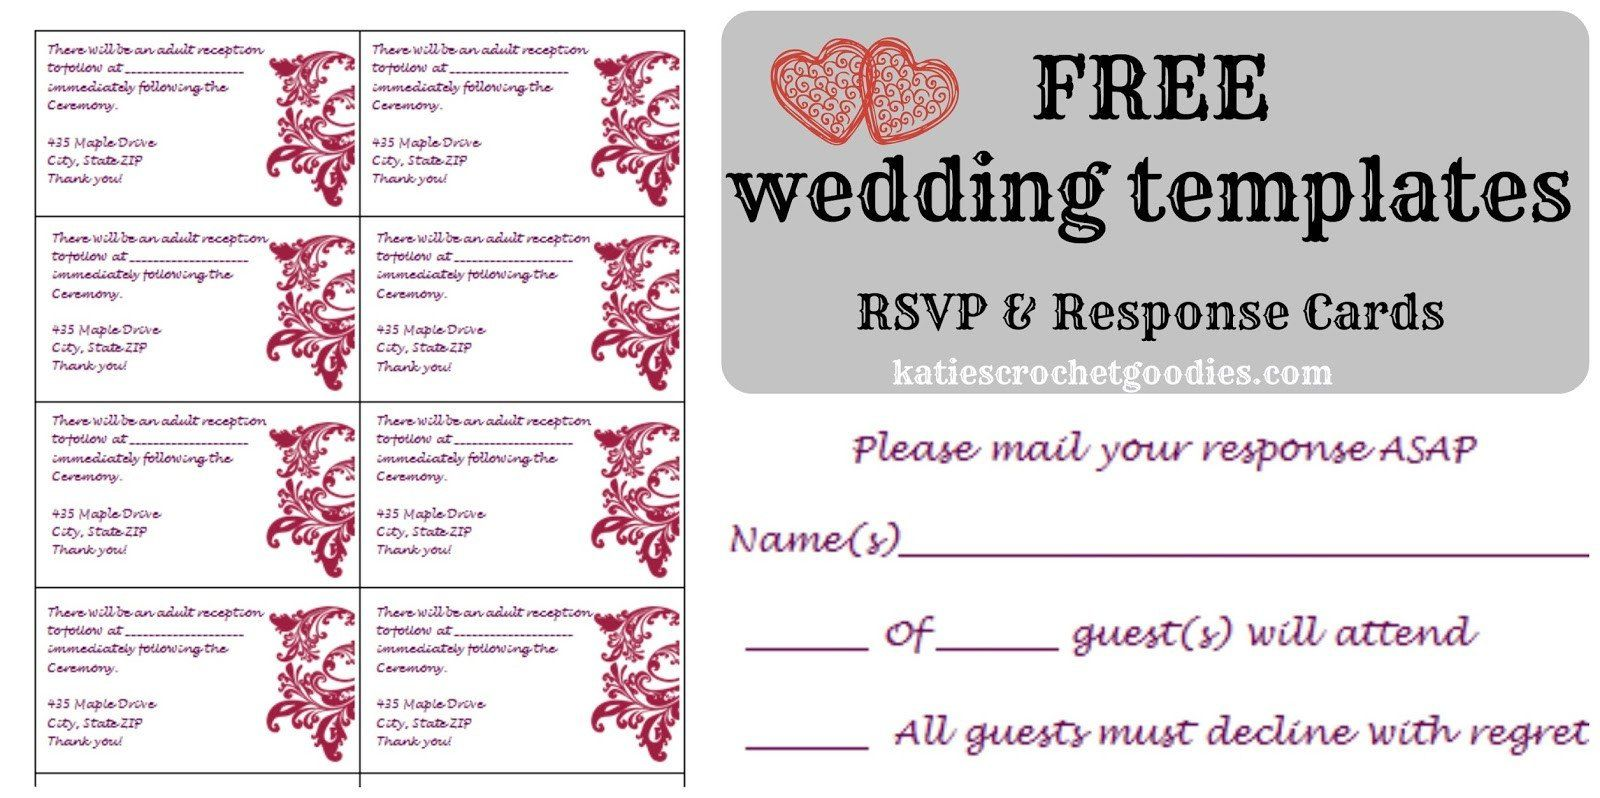 Wedding Invitation Templates Free Pdfs With Easy To Edit Text Fields Free Wedding Invitation Templates Fun Wedding Invitations Wedding Invitation Templates